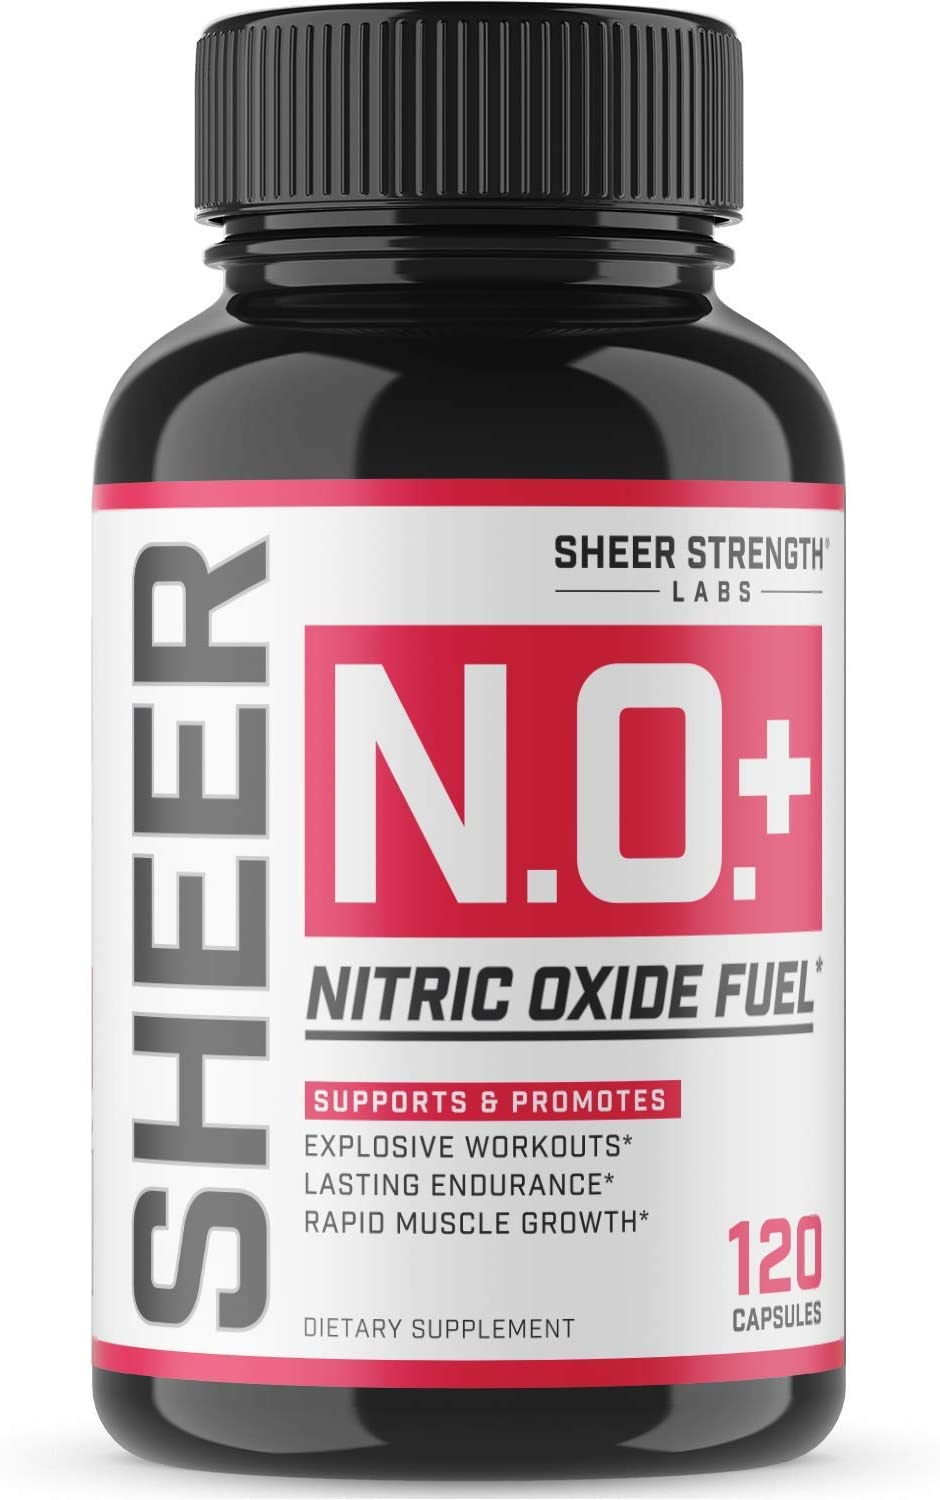 Sheer N.O. + Nitric Oxide Supplement - Premium Muscle Building Nitric Oxide Booster with L Arginine and L Citrulline - Pre Workout Supplement Supports Vascularity & Energy - Sheer Strength - 120ct: Health & Personal Care